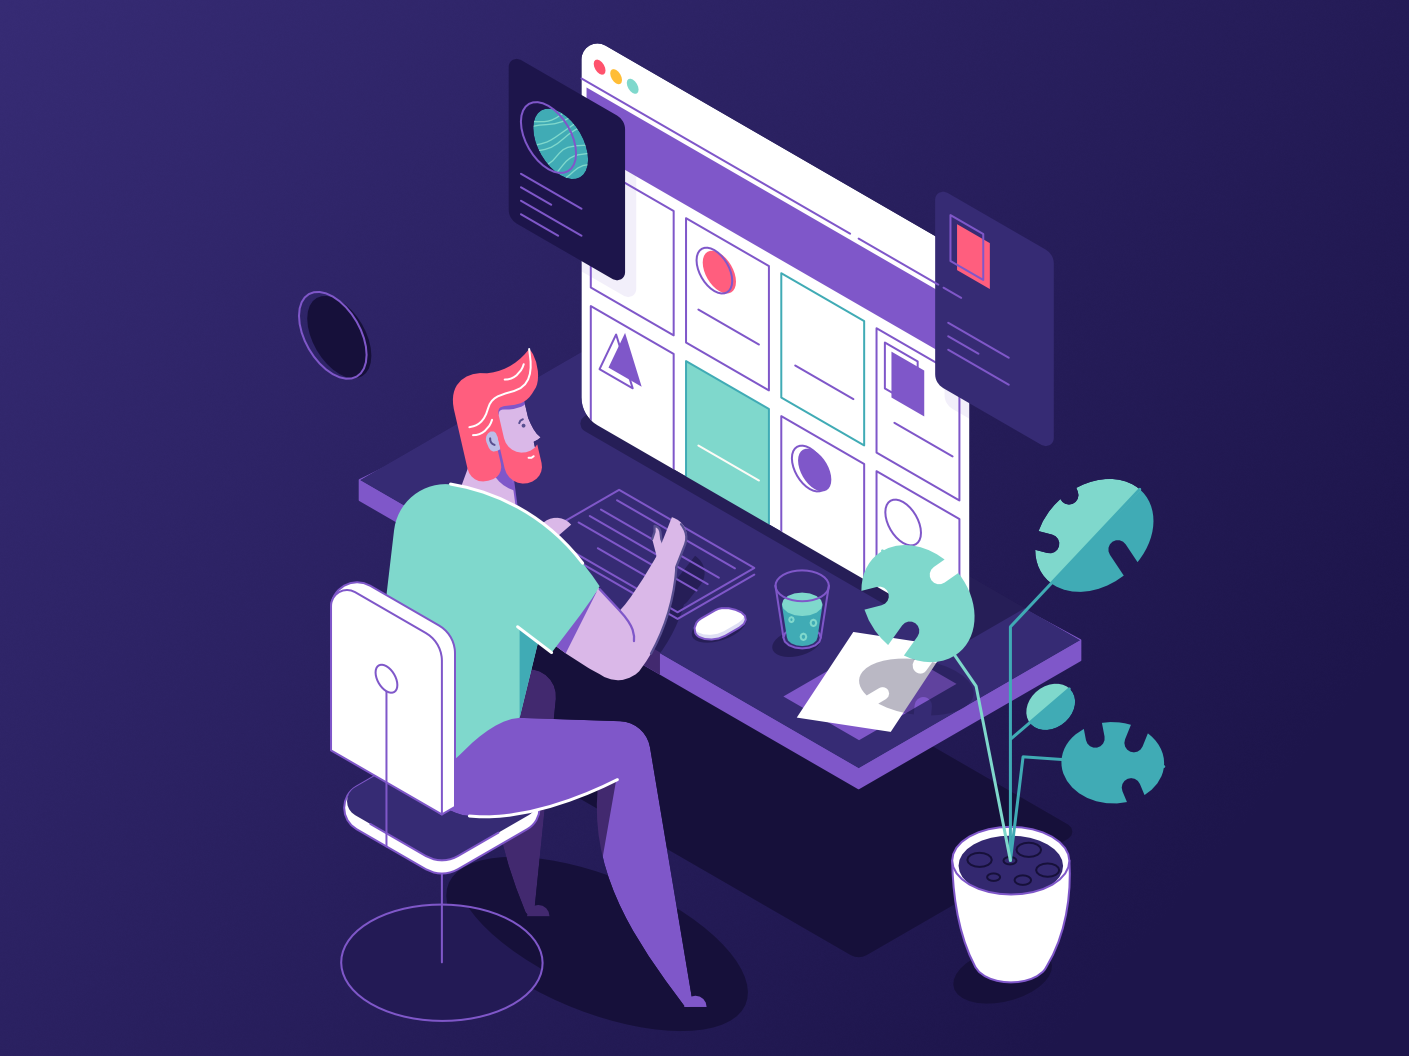 At work - Dark version simple affinity designer man clean vector character illustration